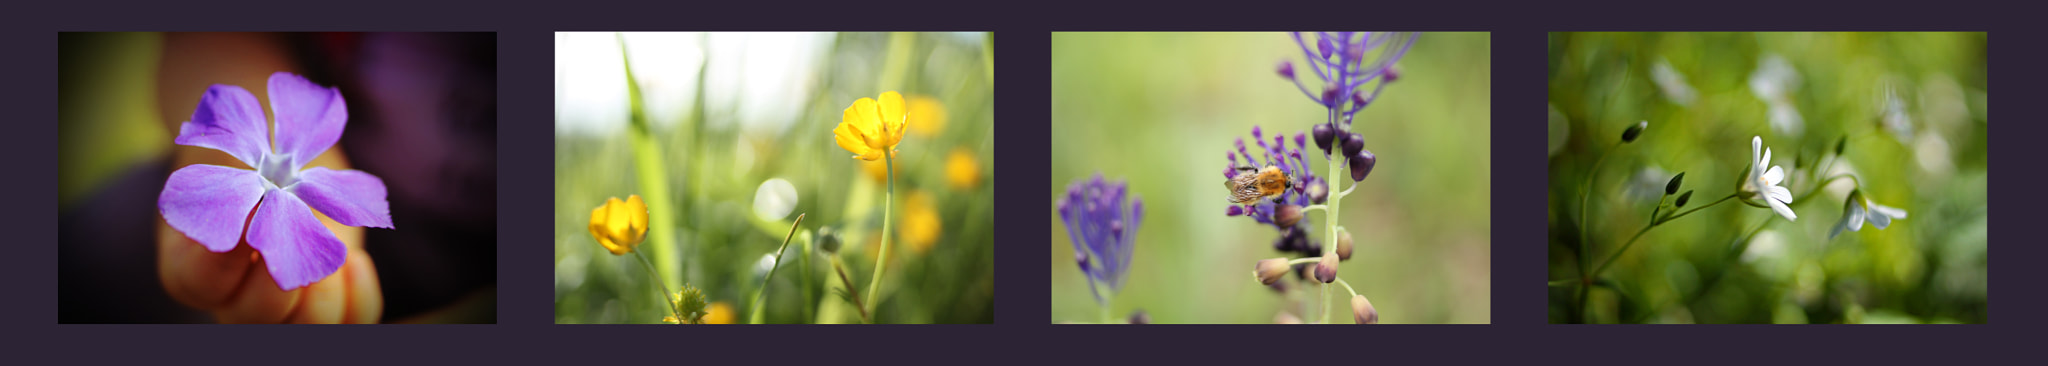 Photograph Wildflower Collection by ePhotographicandesign on 500px